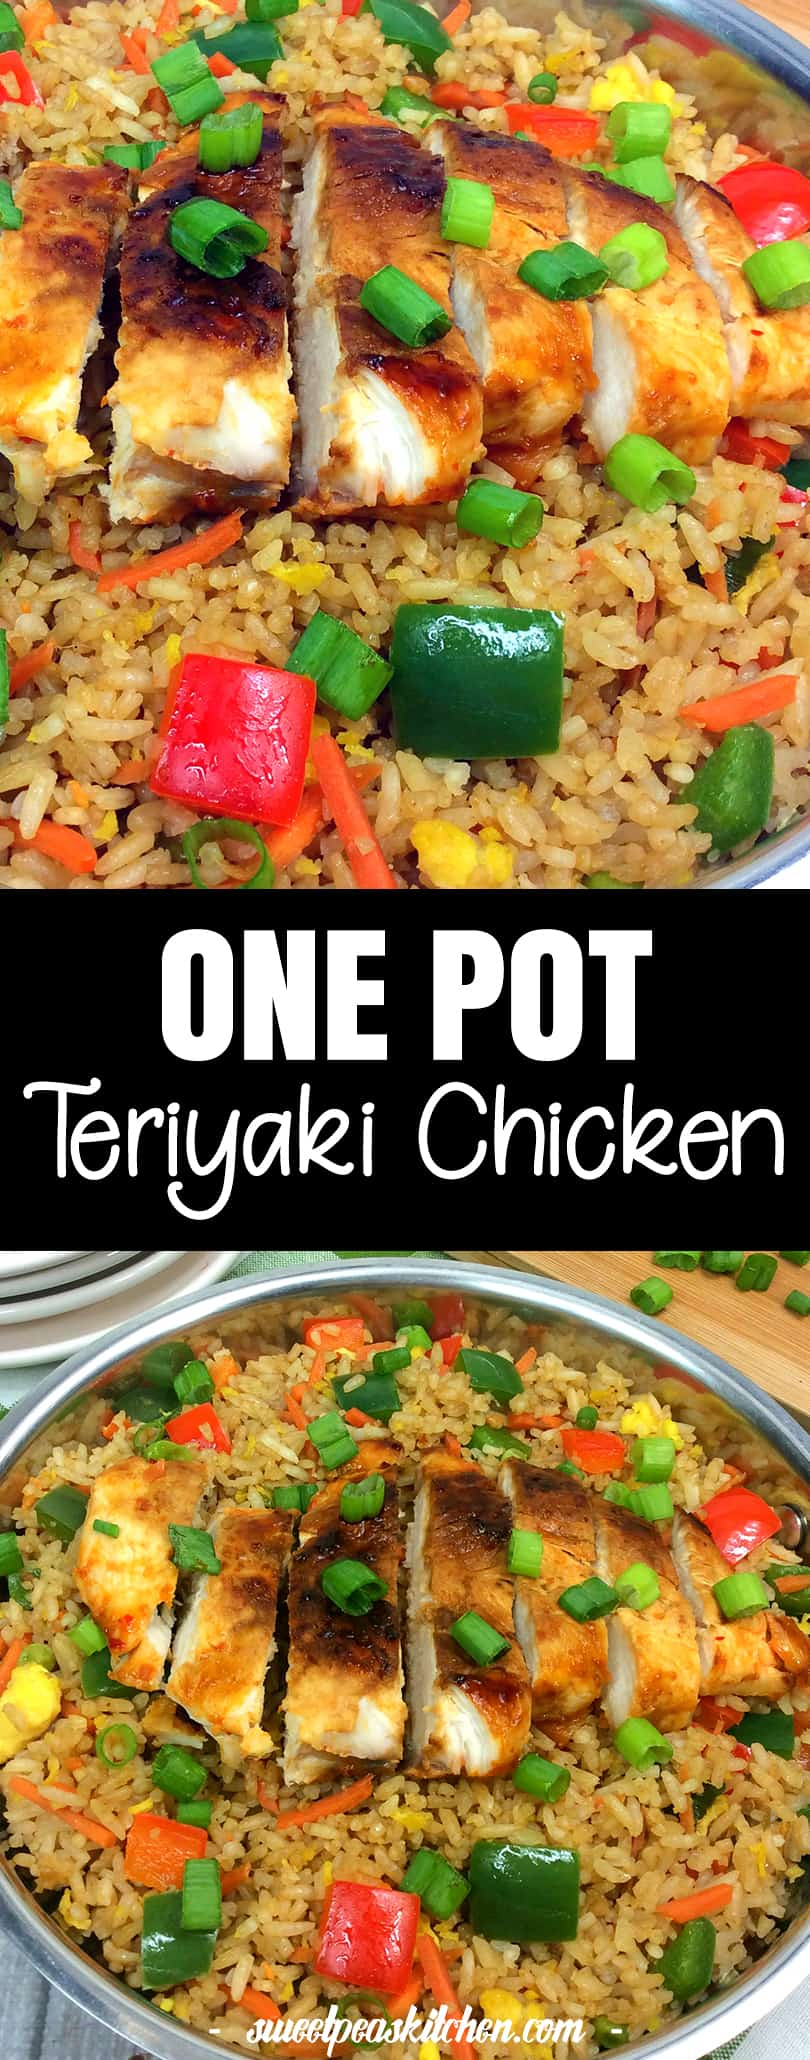 One Pot Teriyaki Chicken Stir Fry